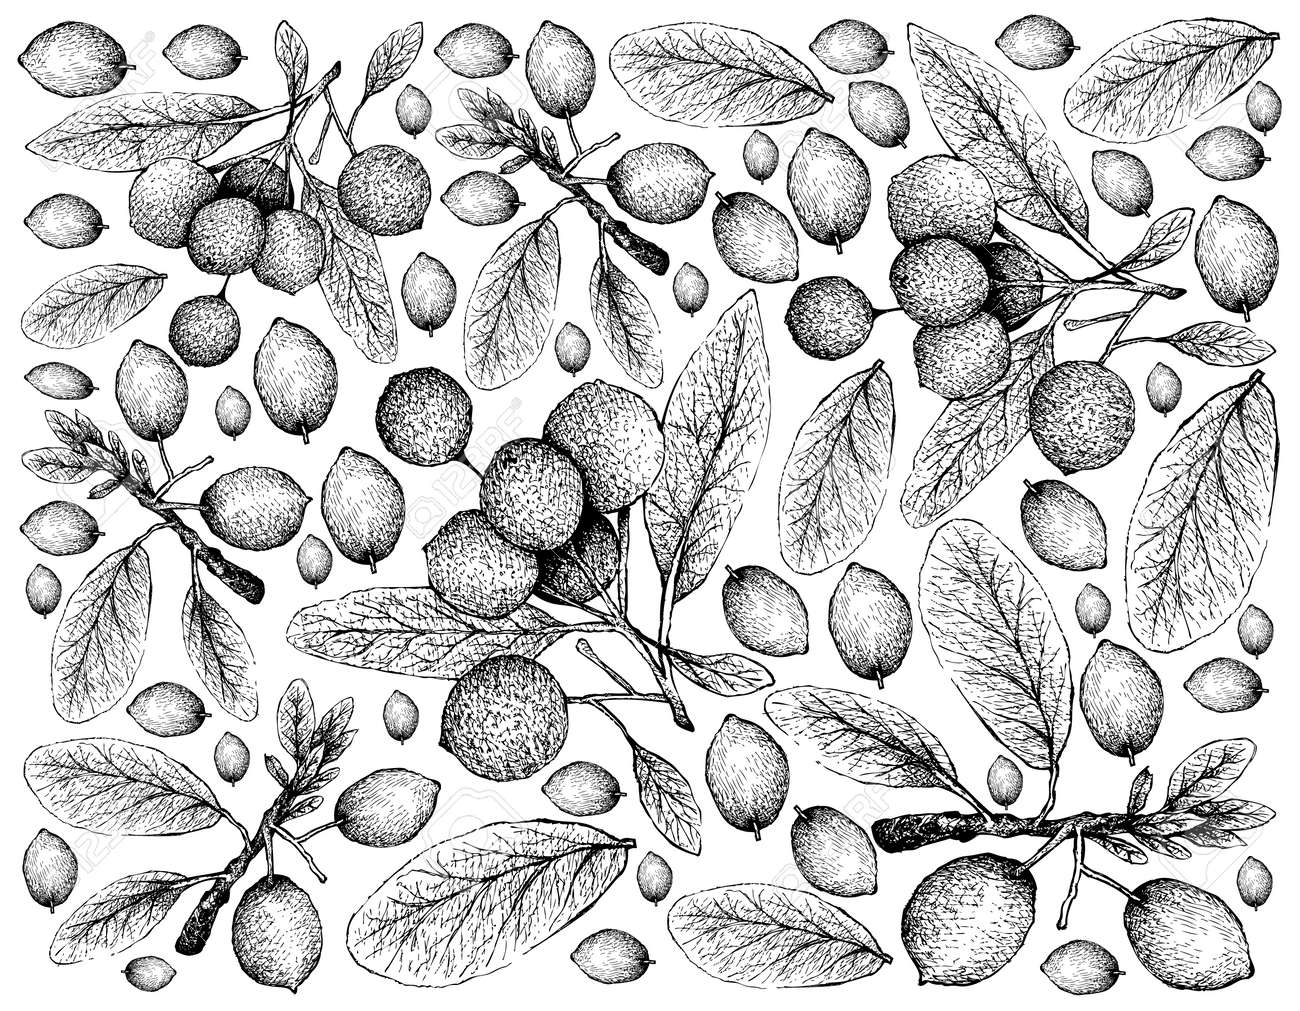 Tropical Fruit Illustration Wallpaper Of Hand Drawn Sketch Imbe